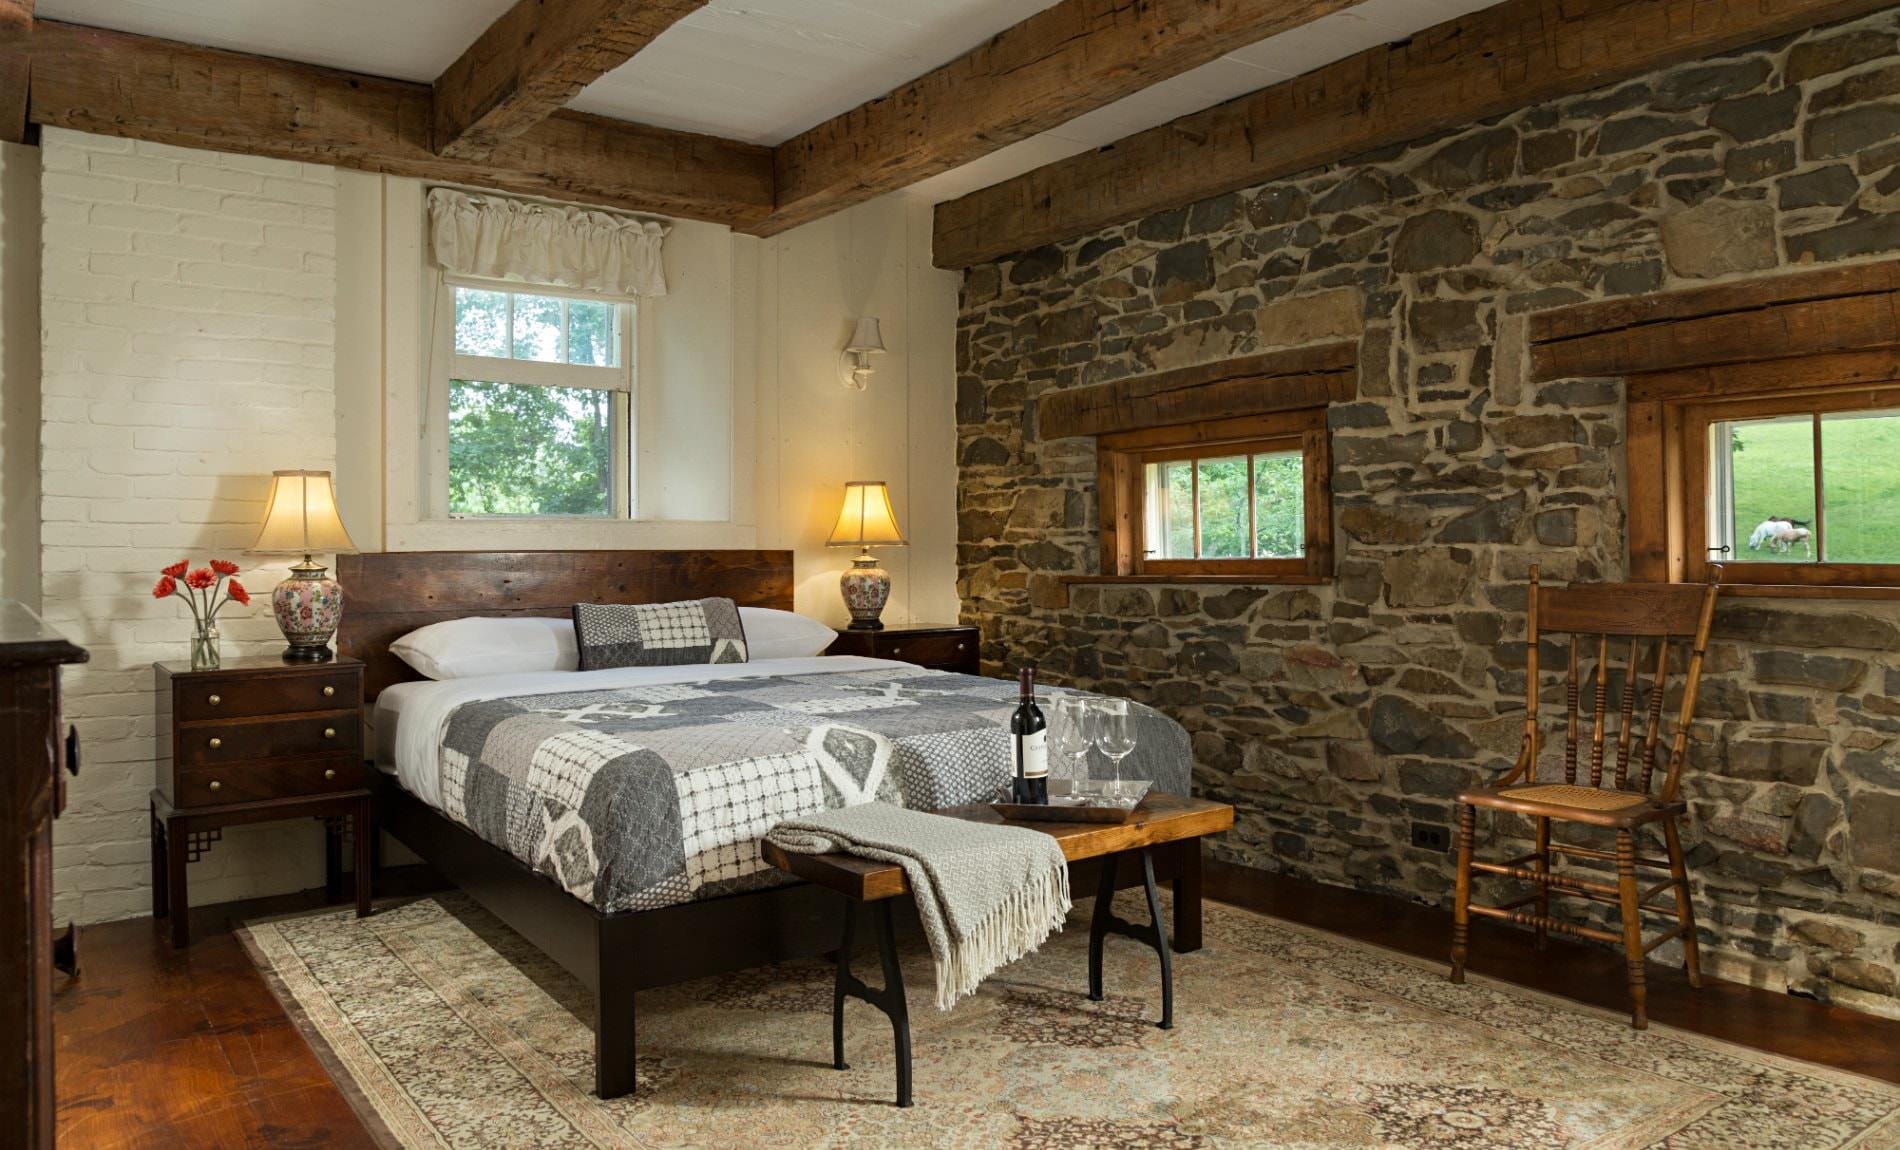 Spacious white room, exposed rustic beams, stone wall with two small windows, light colored rug, gray and white covered bed